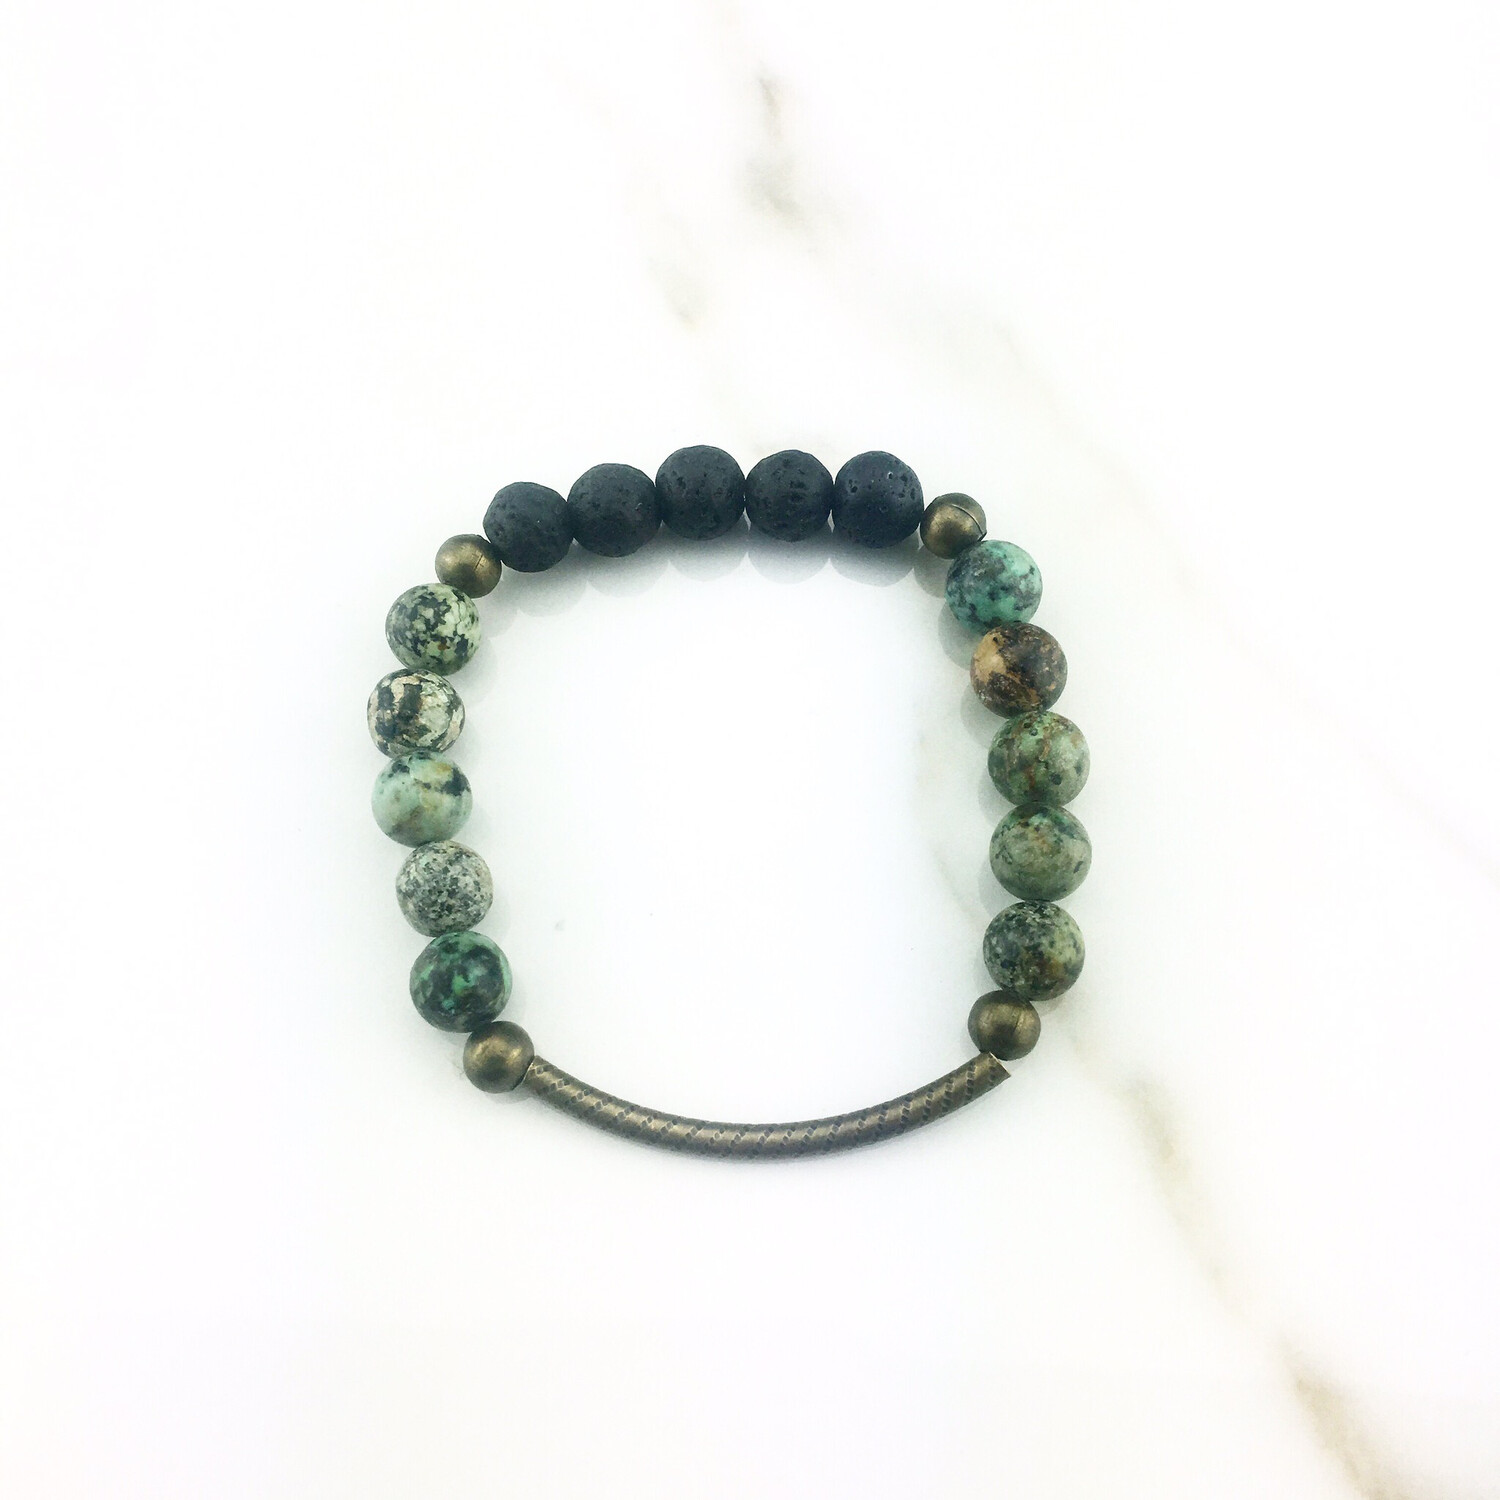 African Turquoise Bead Diffuser Bracelet